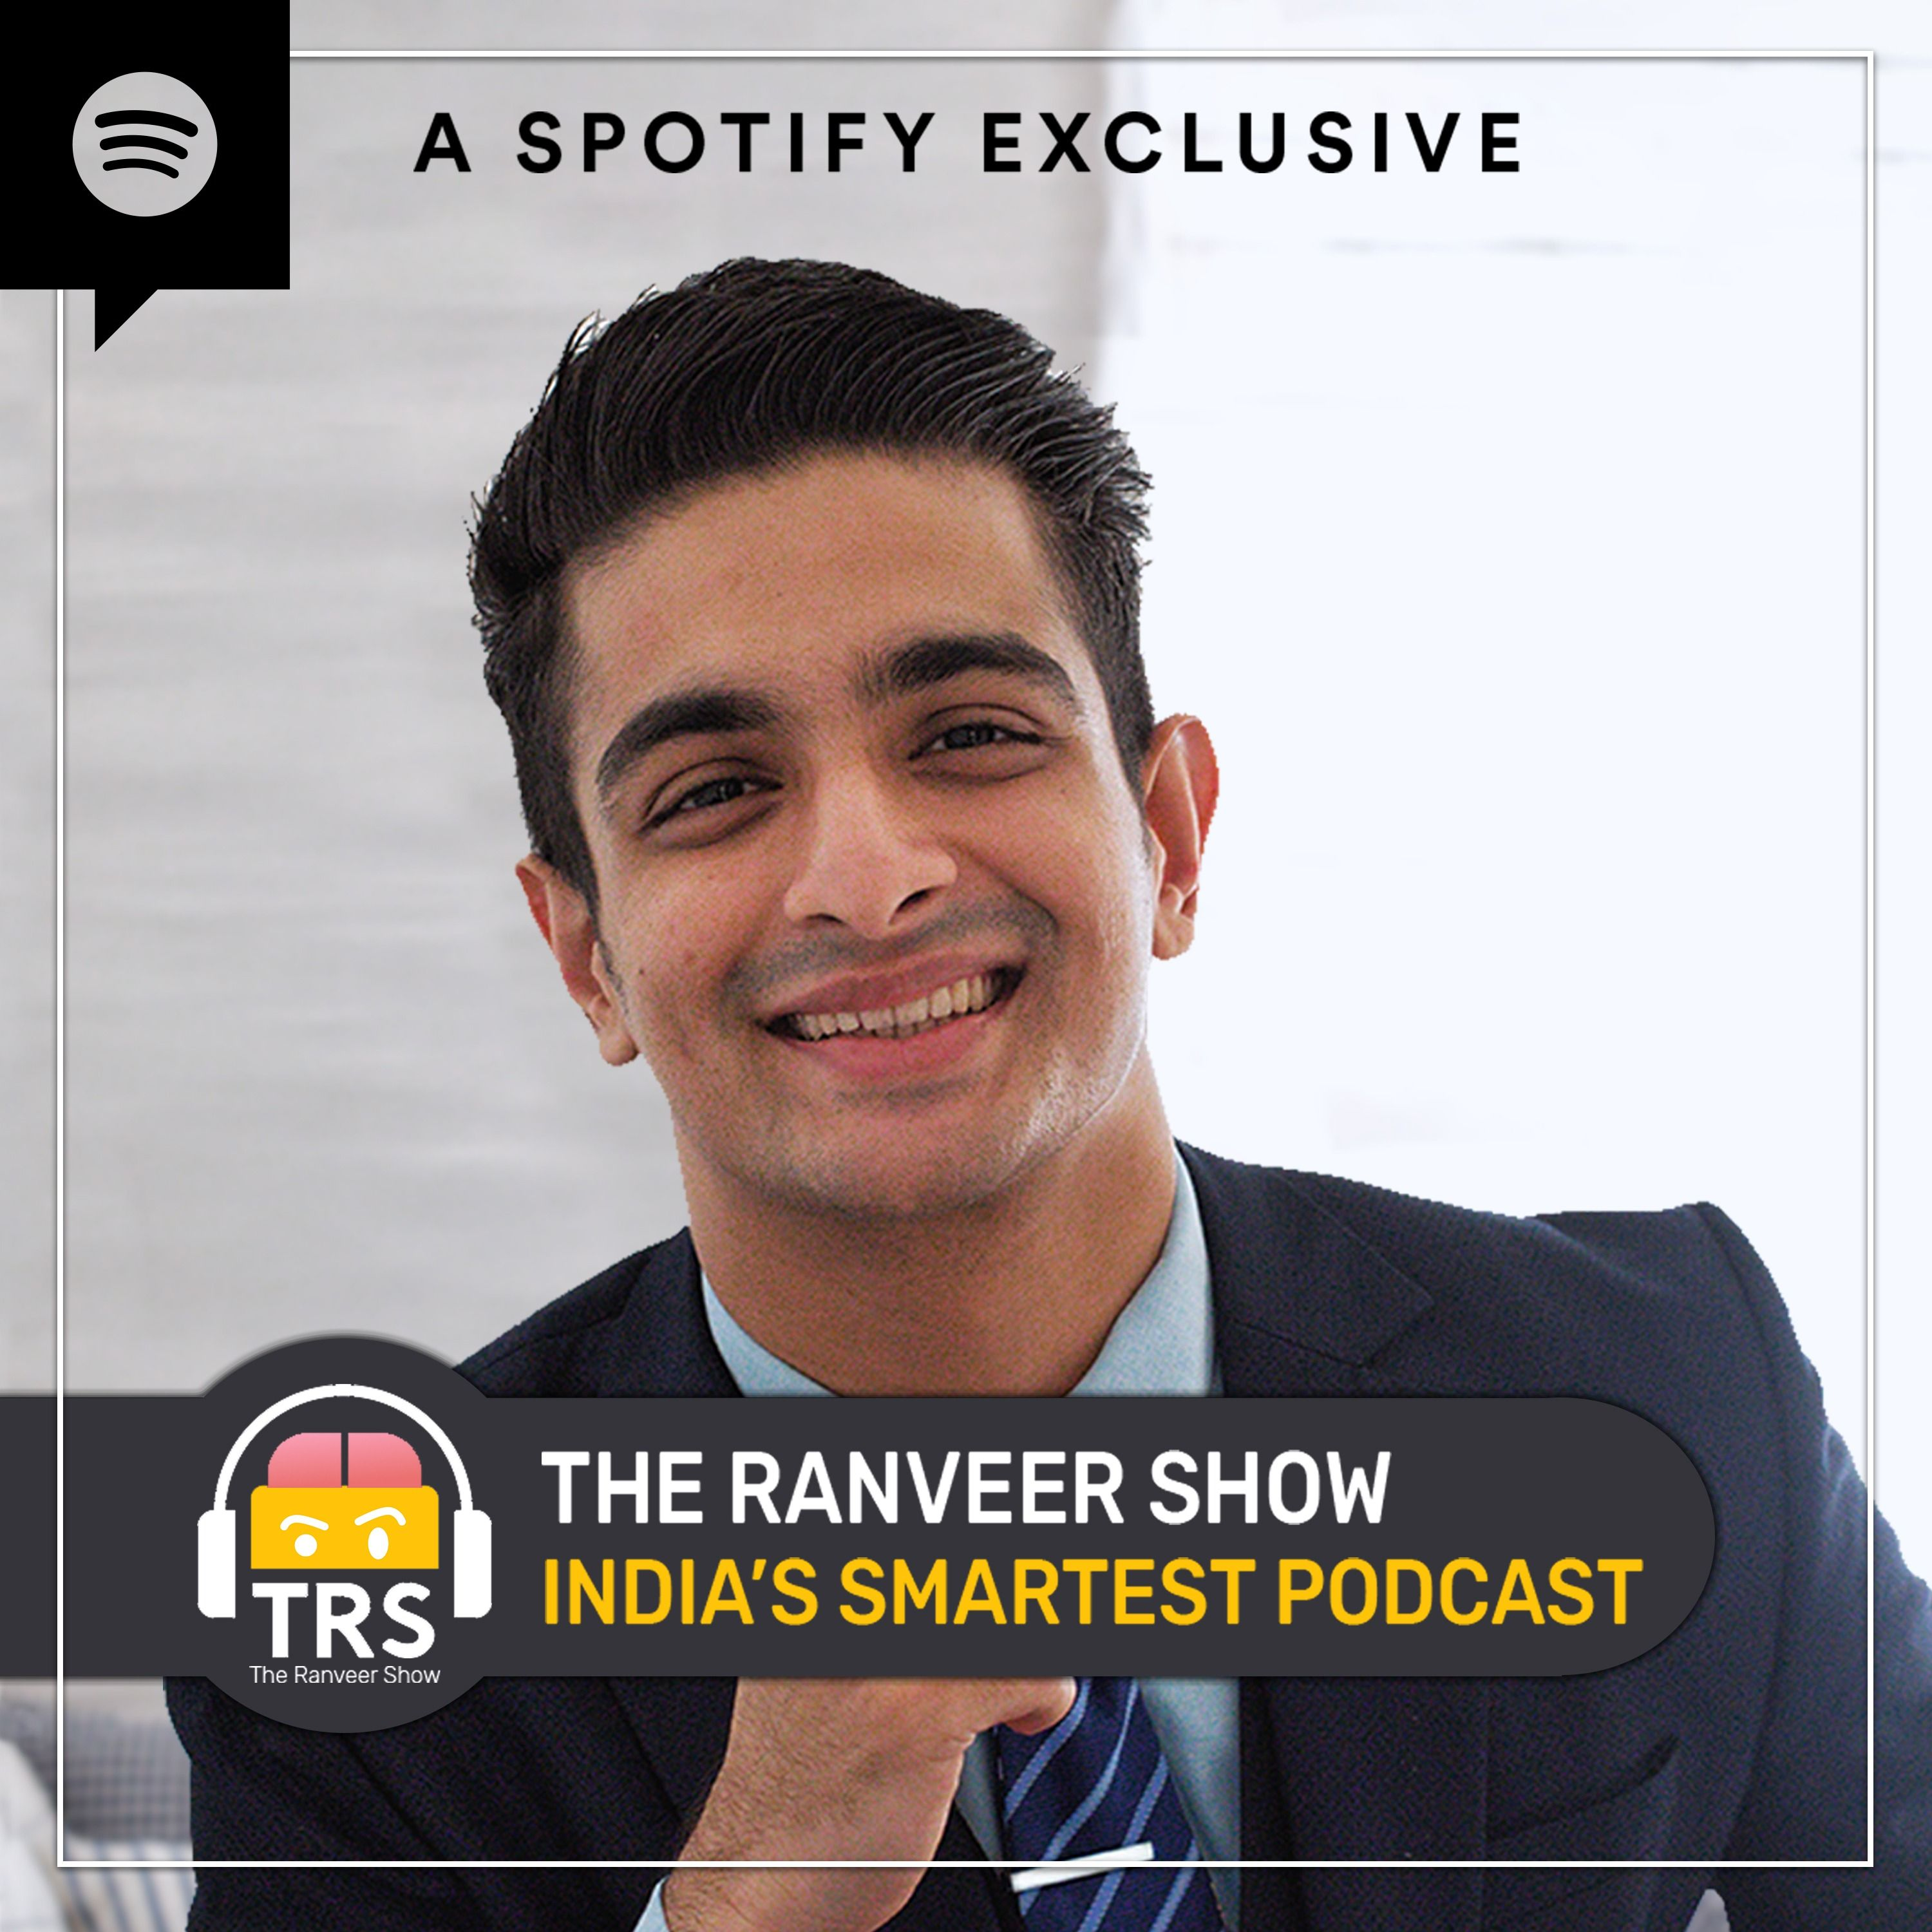 Come Follow The Ranveer Show only on Spotify!